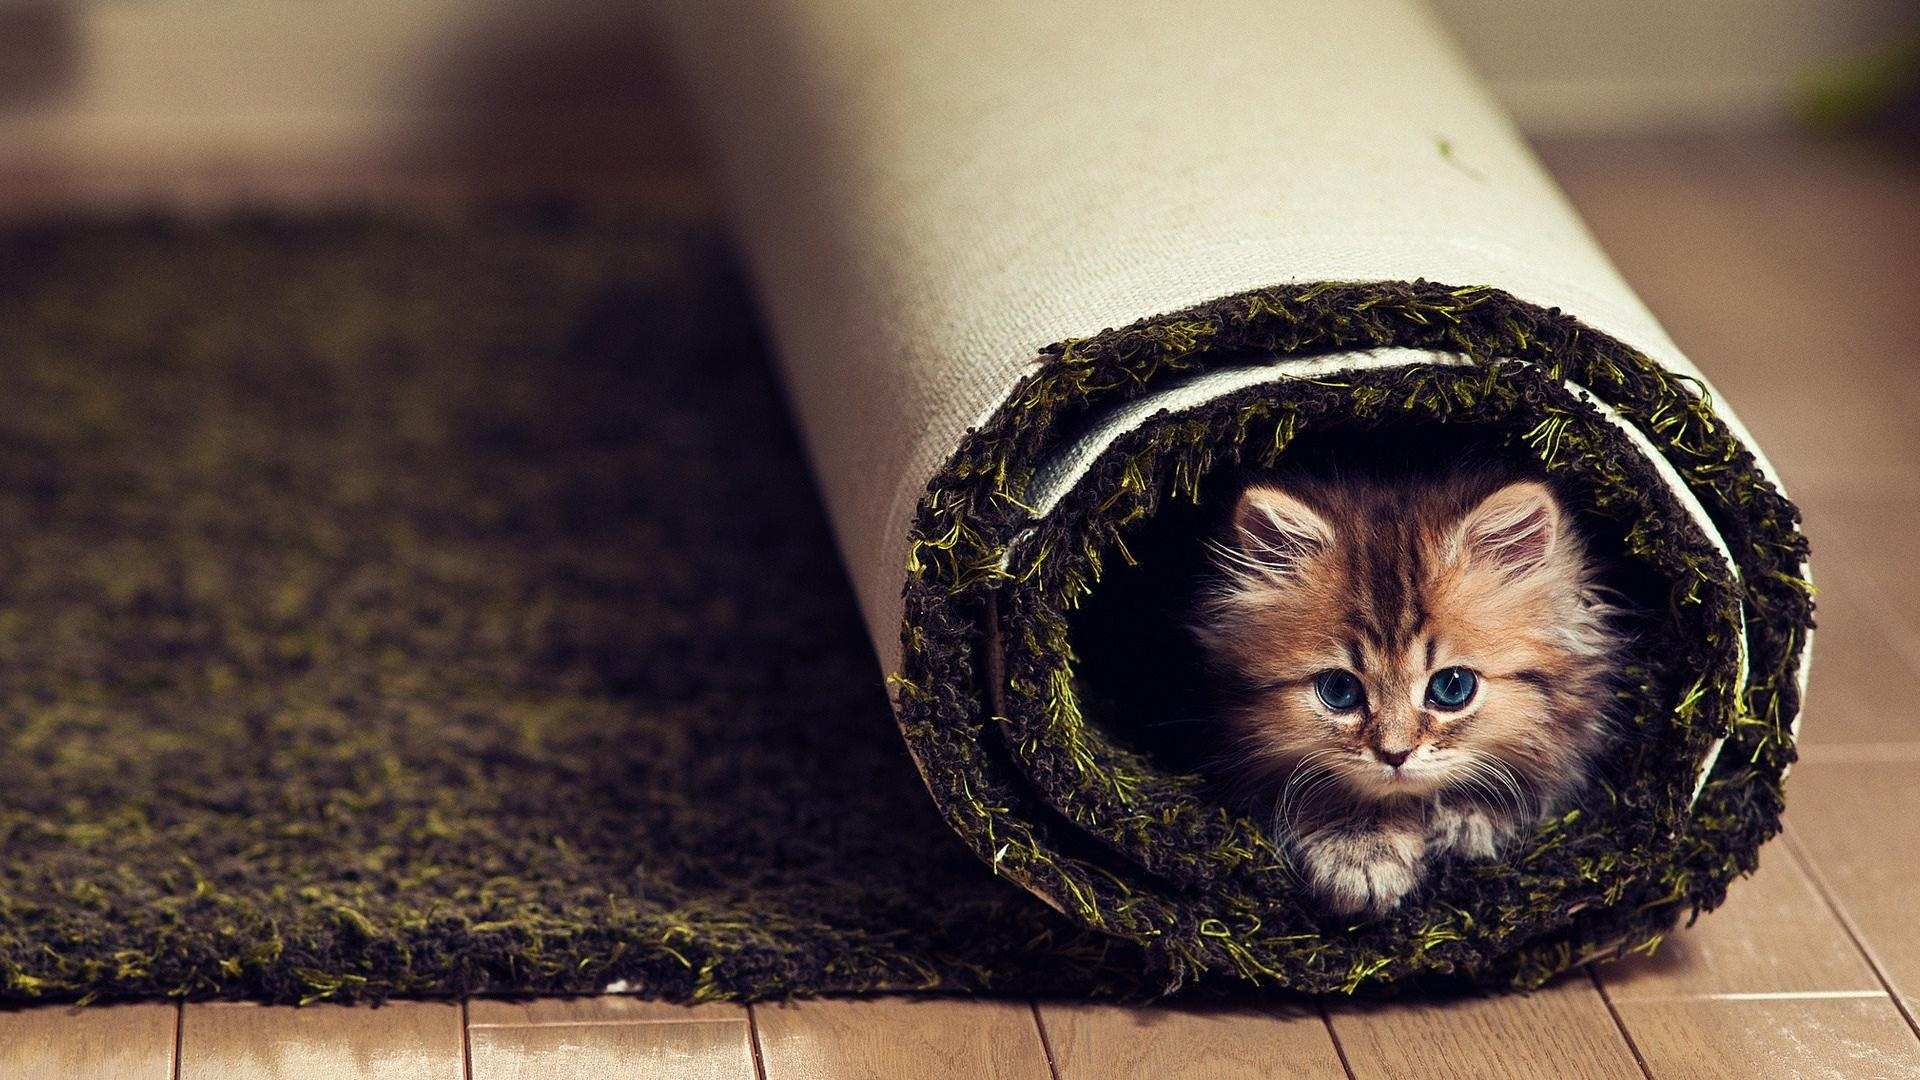 Funny Carpet animals cats kittens cute fir face whiskers eyes carpet humor